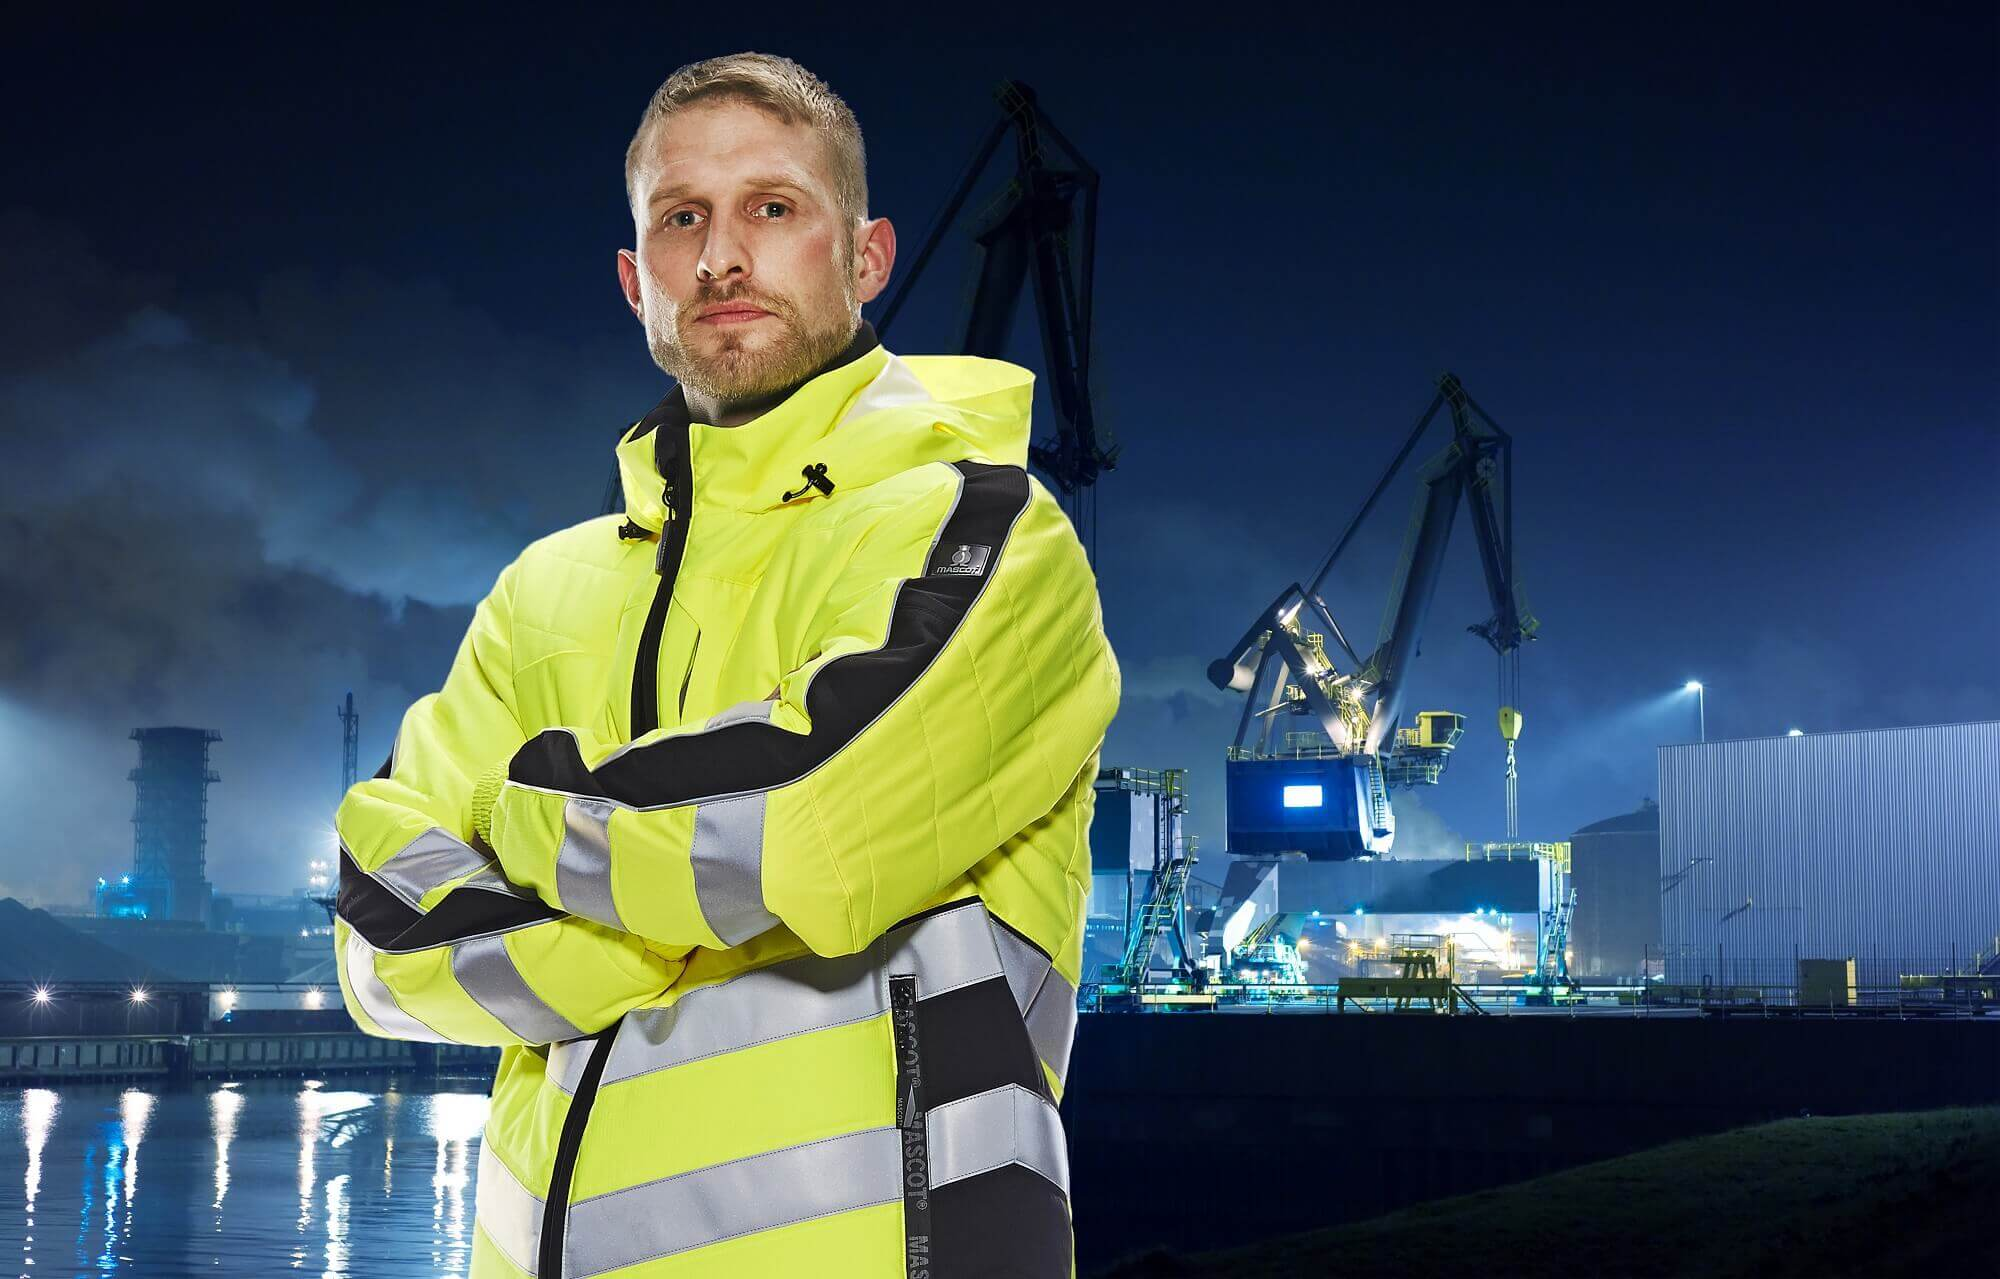 Work Jacket Fluorescent yellow - Man - Environment